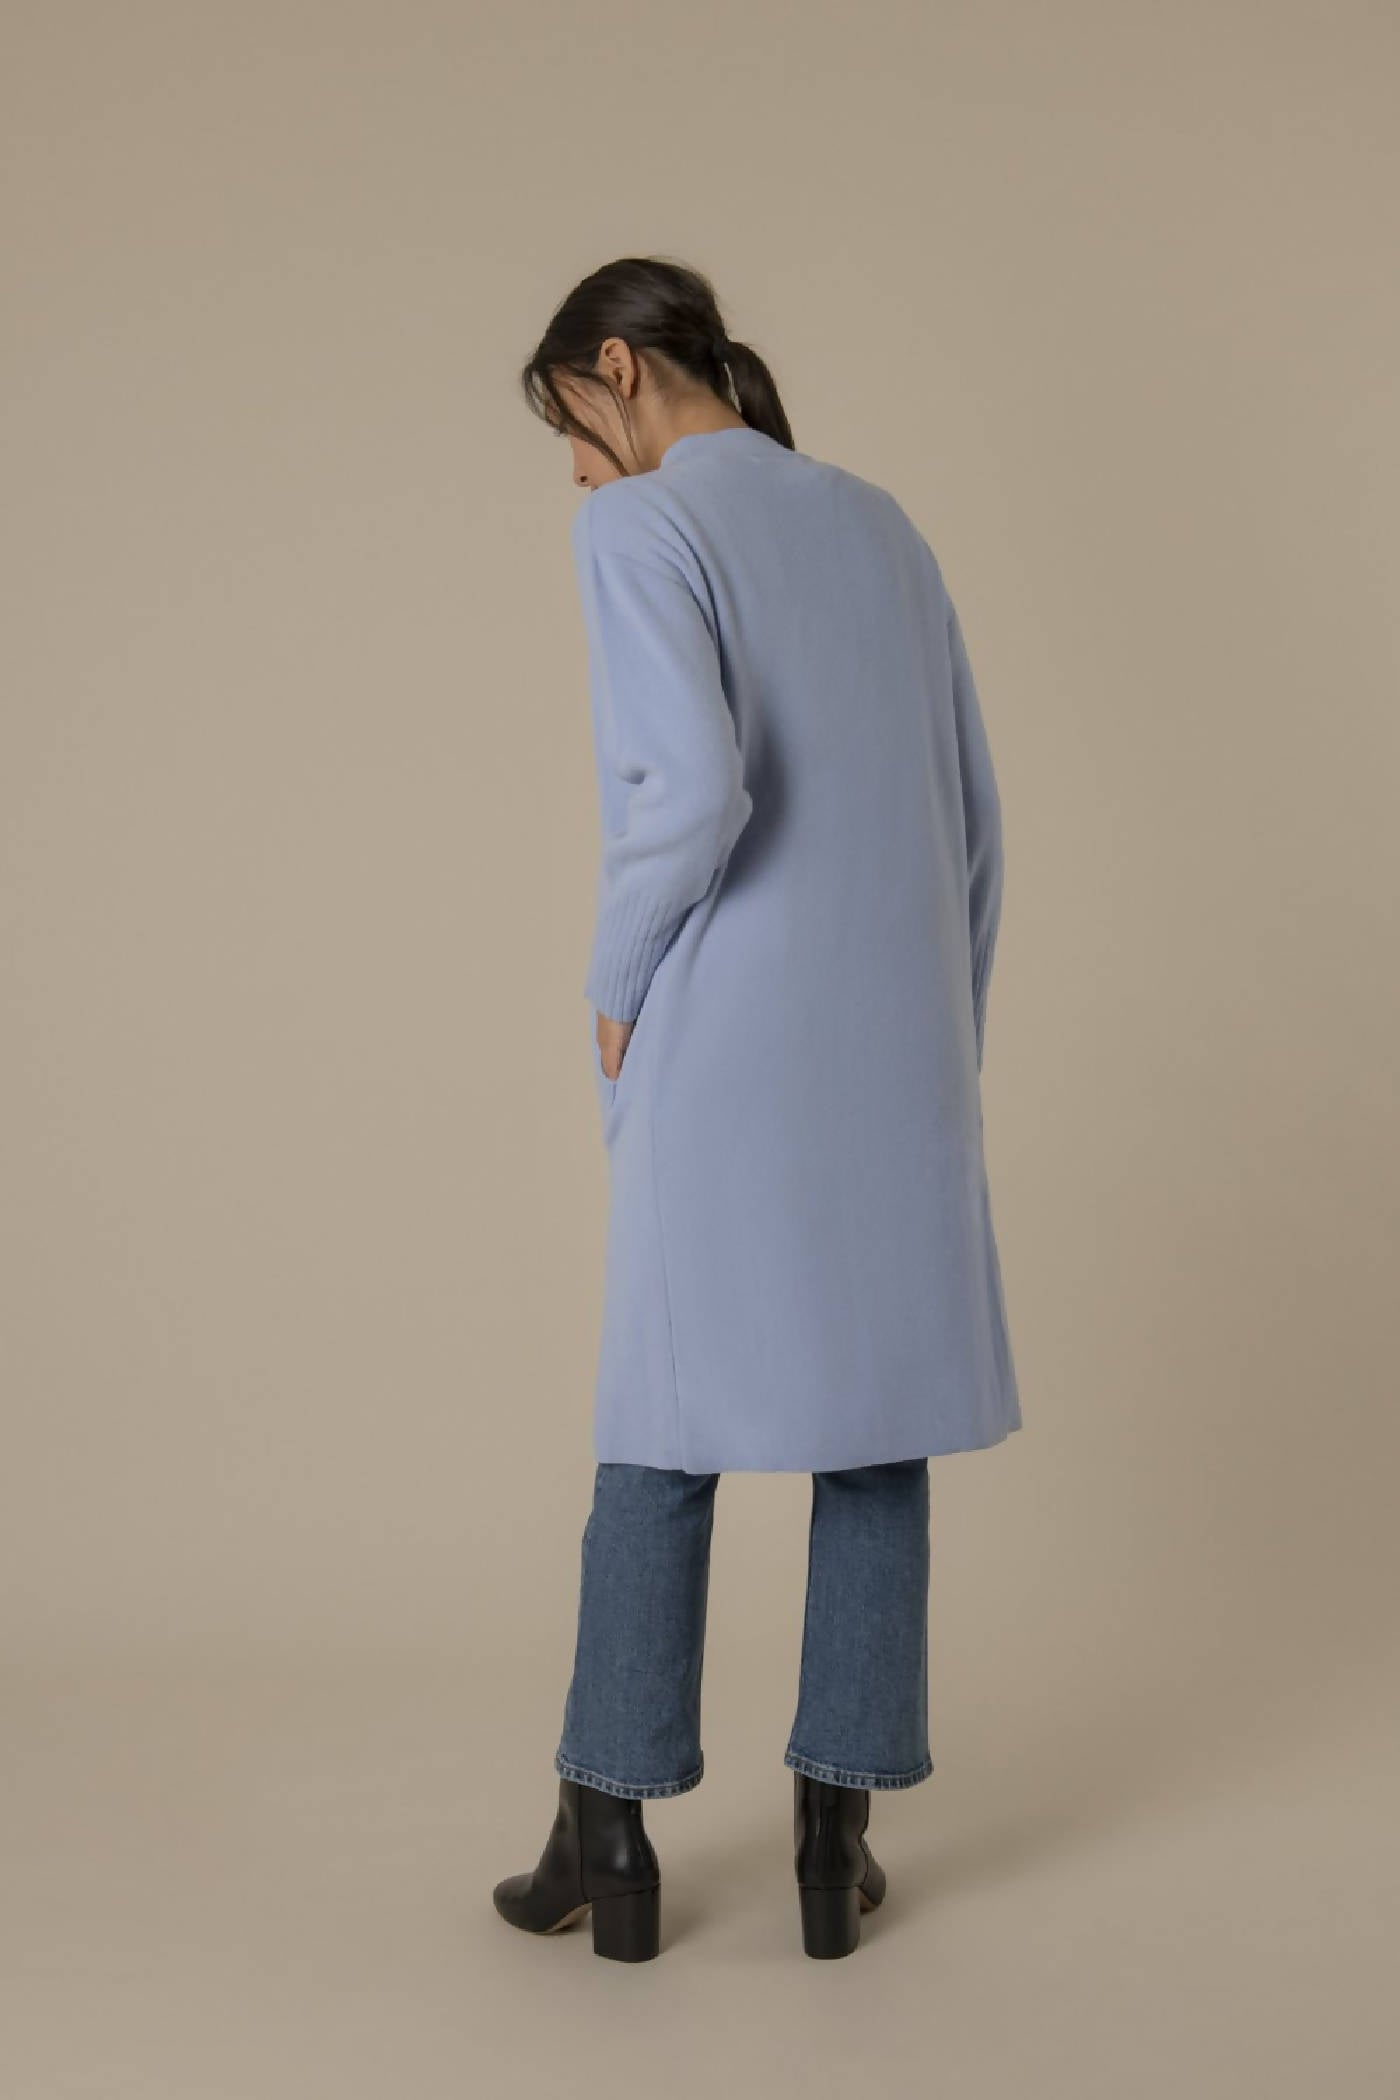 Long cardigan in a smooth cashmere blend with a beautiful sky-blue color